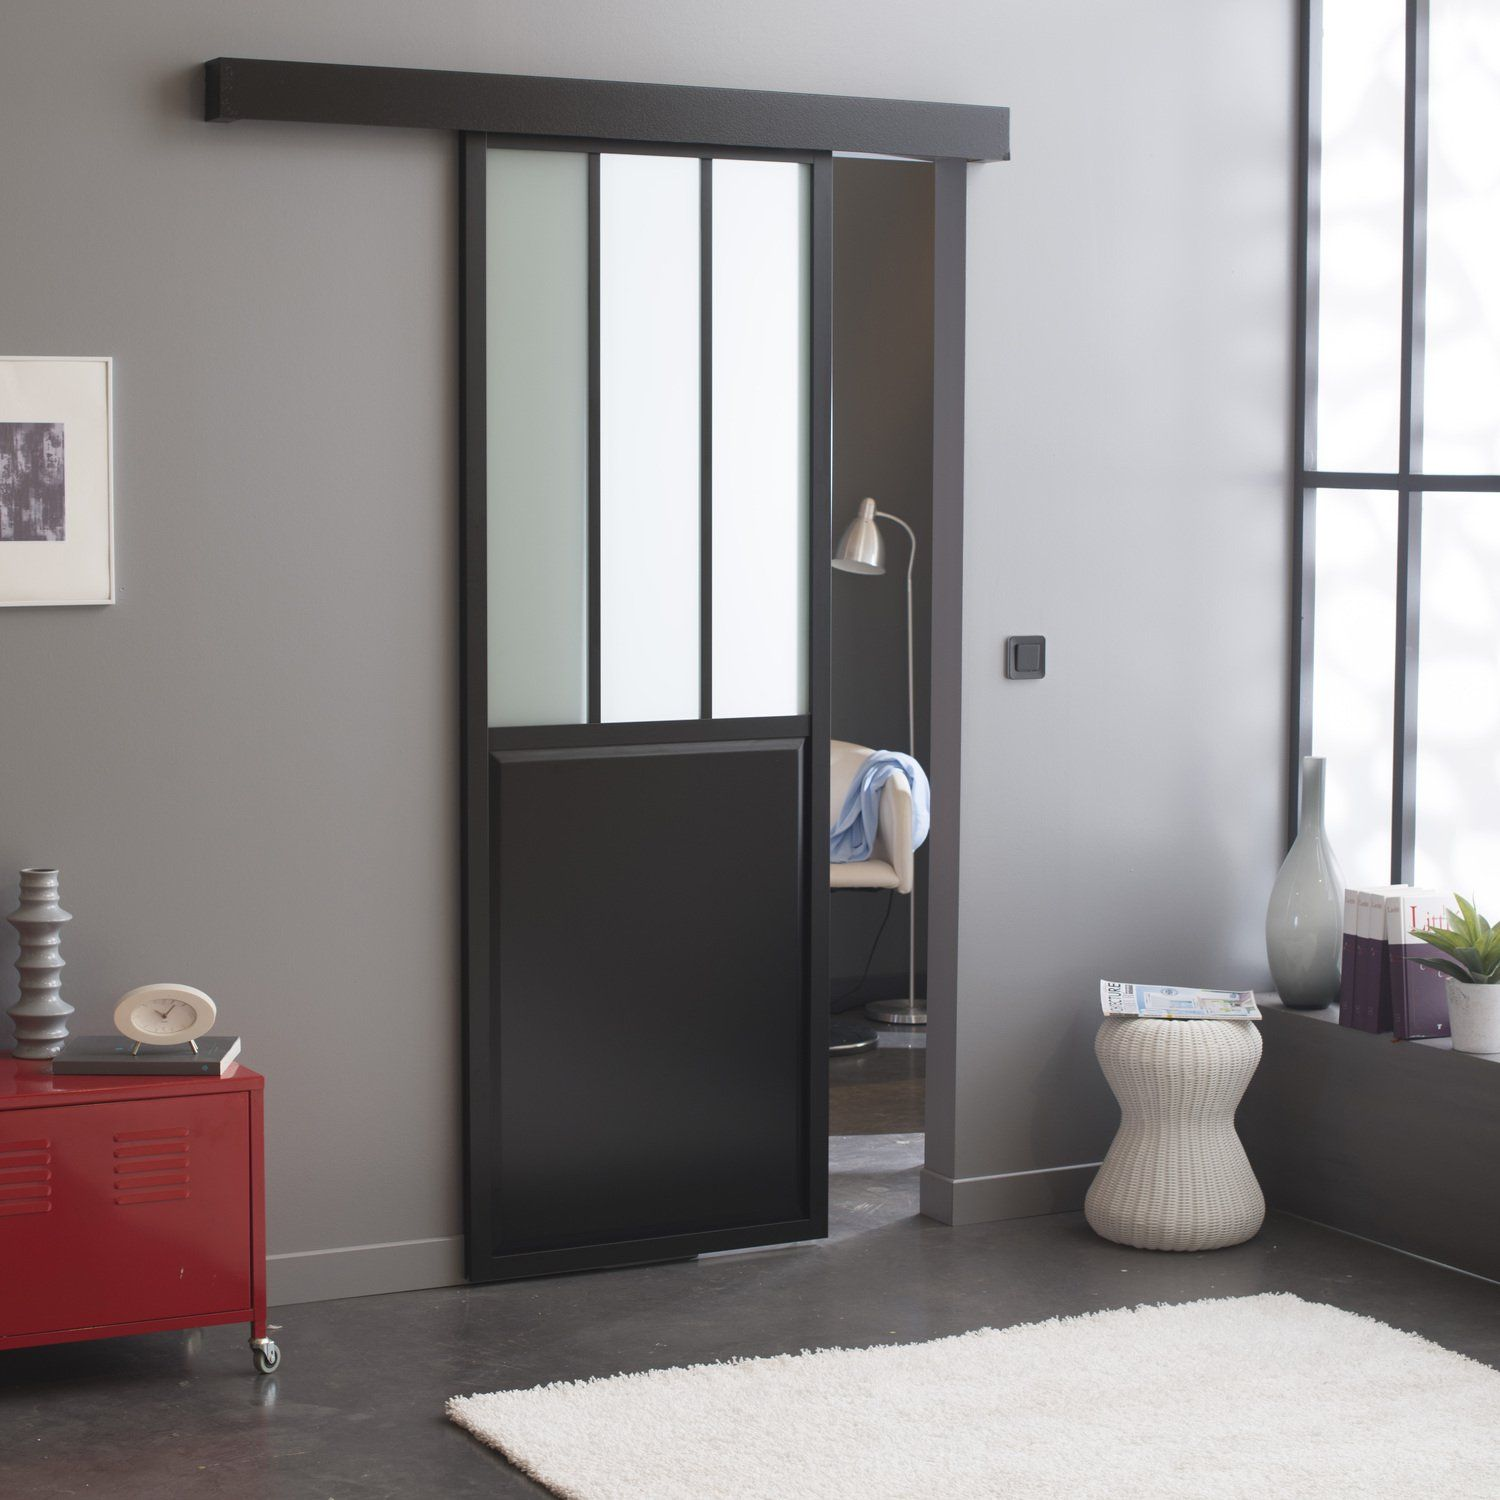 porte coulissante en aluminium noir fonc dans un esprit. Black Bedroom Furniture Sets. Home Design Ideas